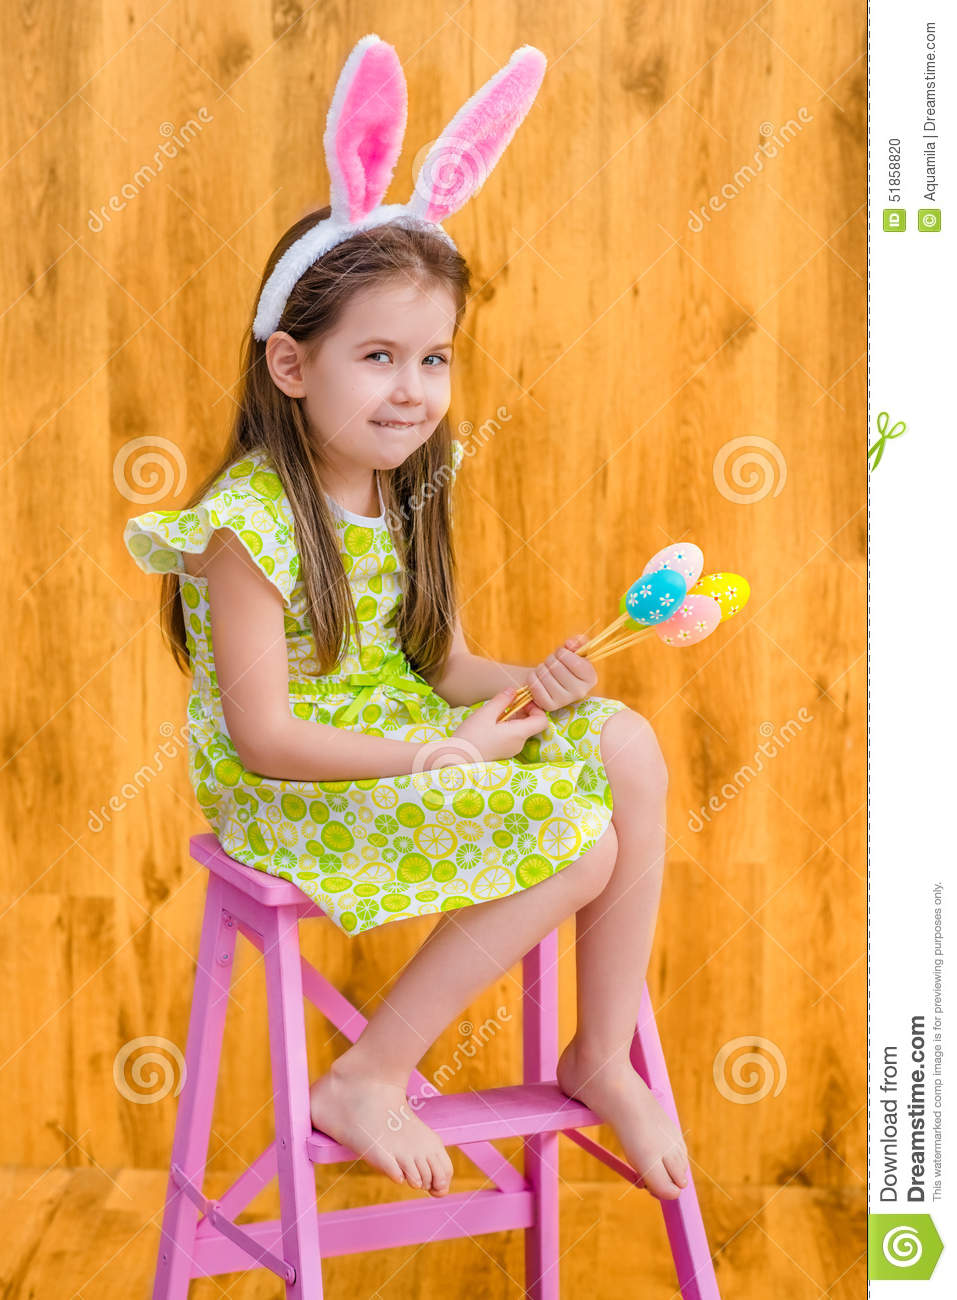 Barefooted girl wearing pink white rabbit or bunny ears and holding bunch of colorful eggs